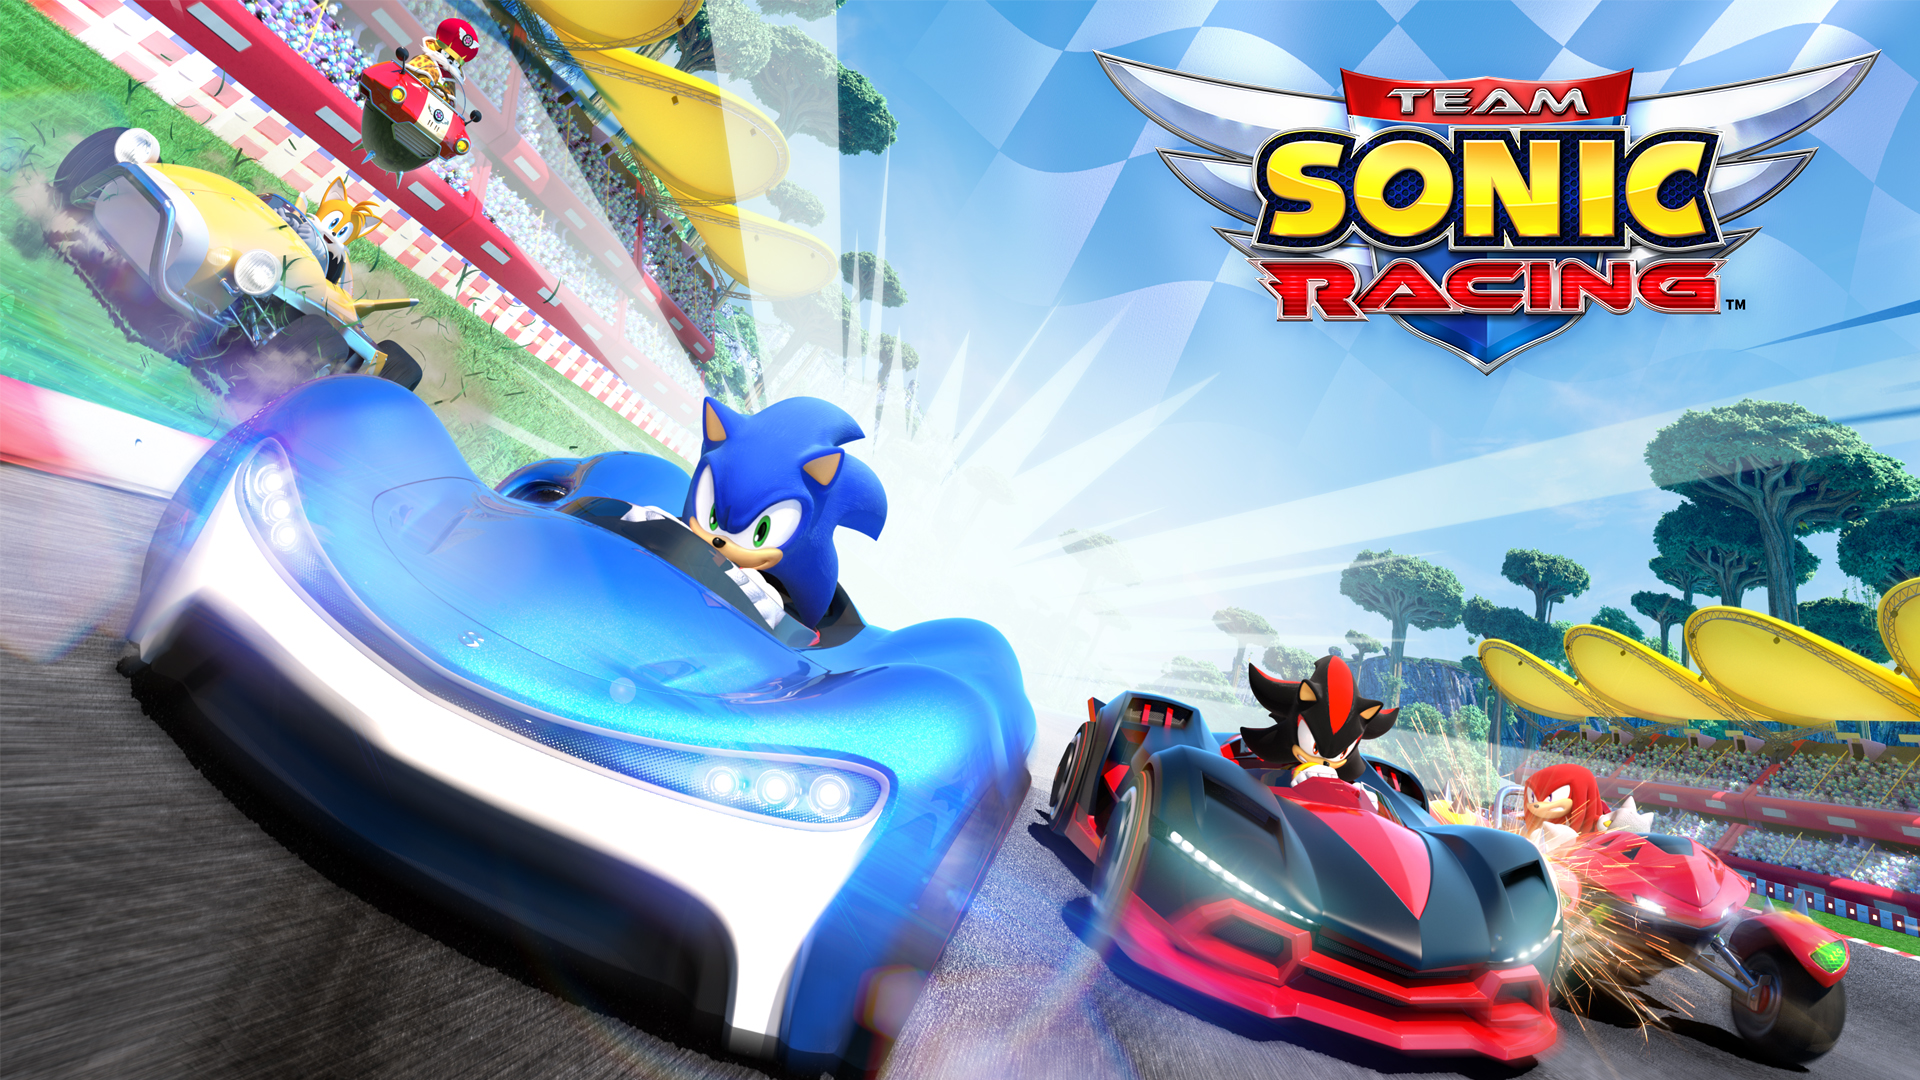 Team Sonic Racing PC Version Free Download